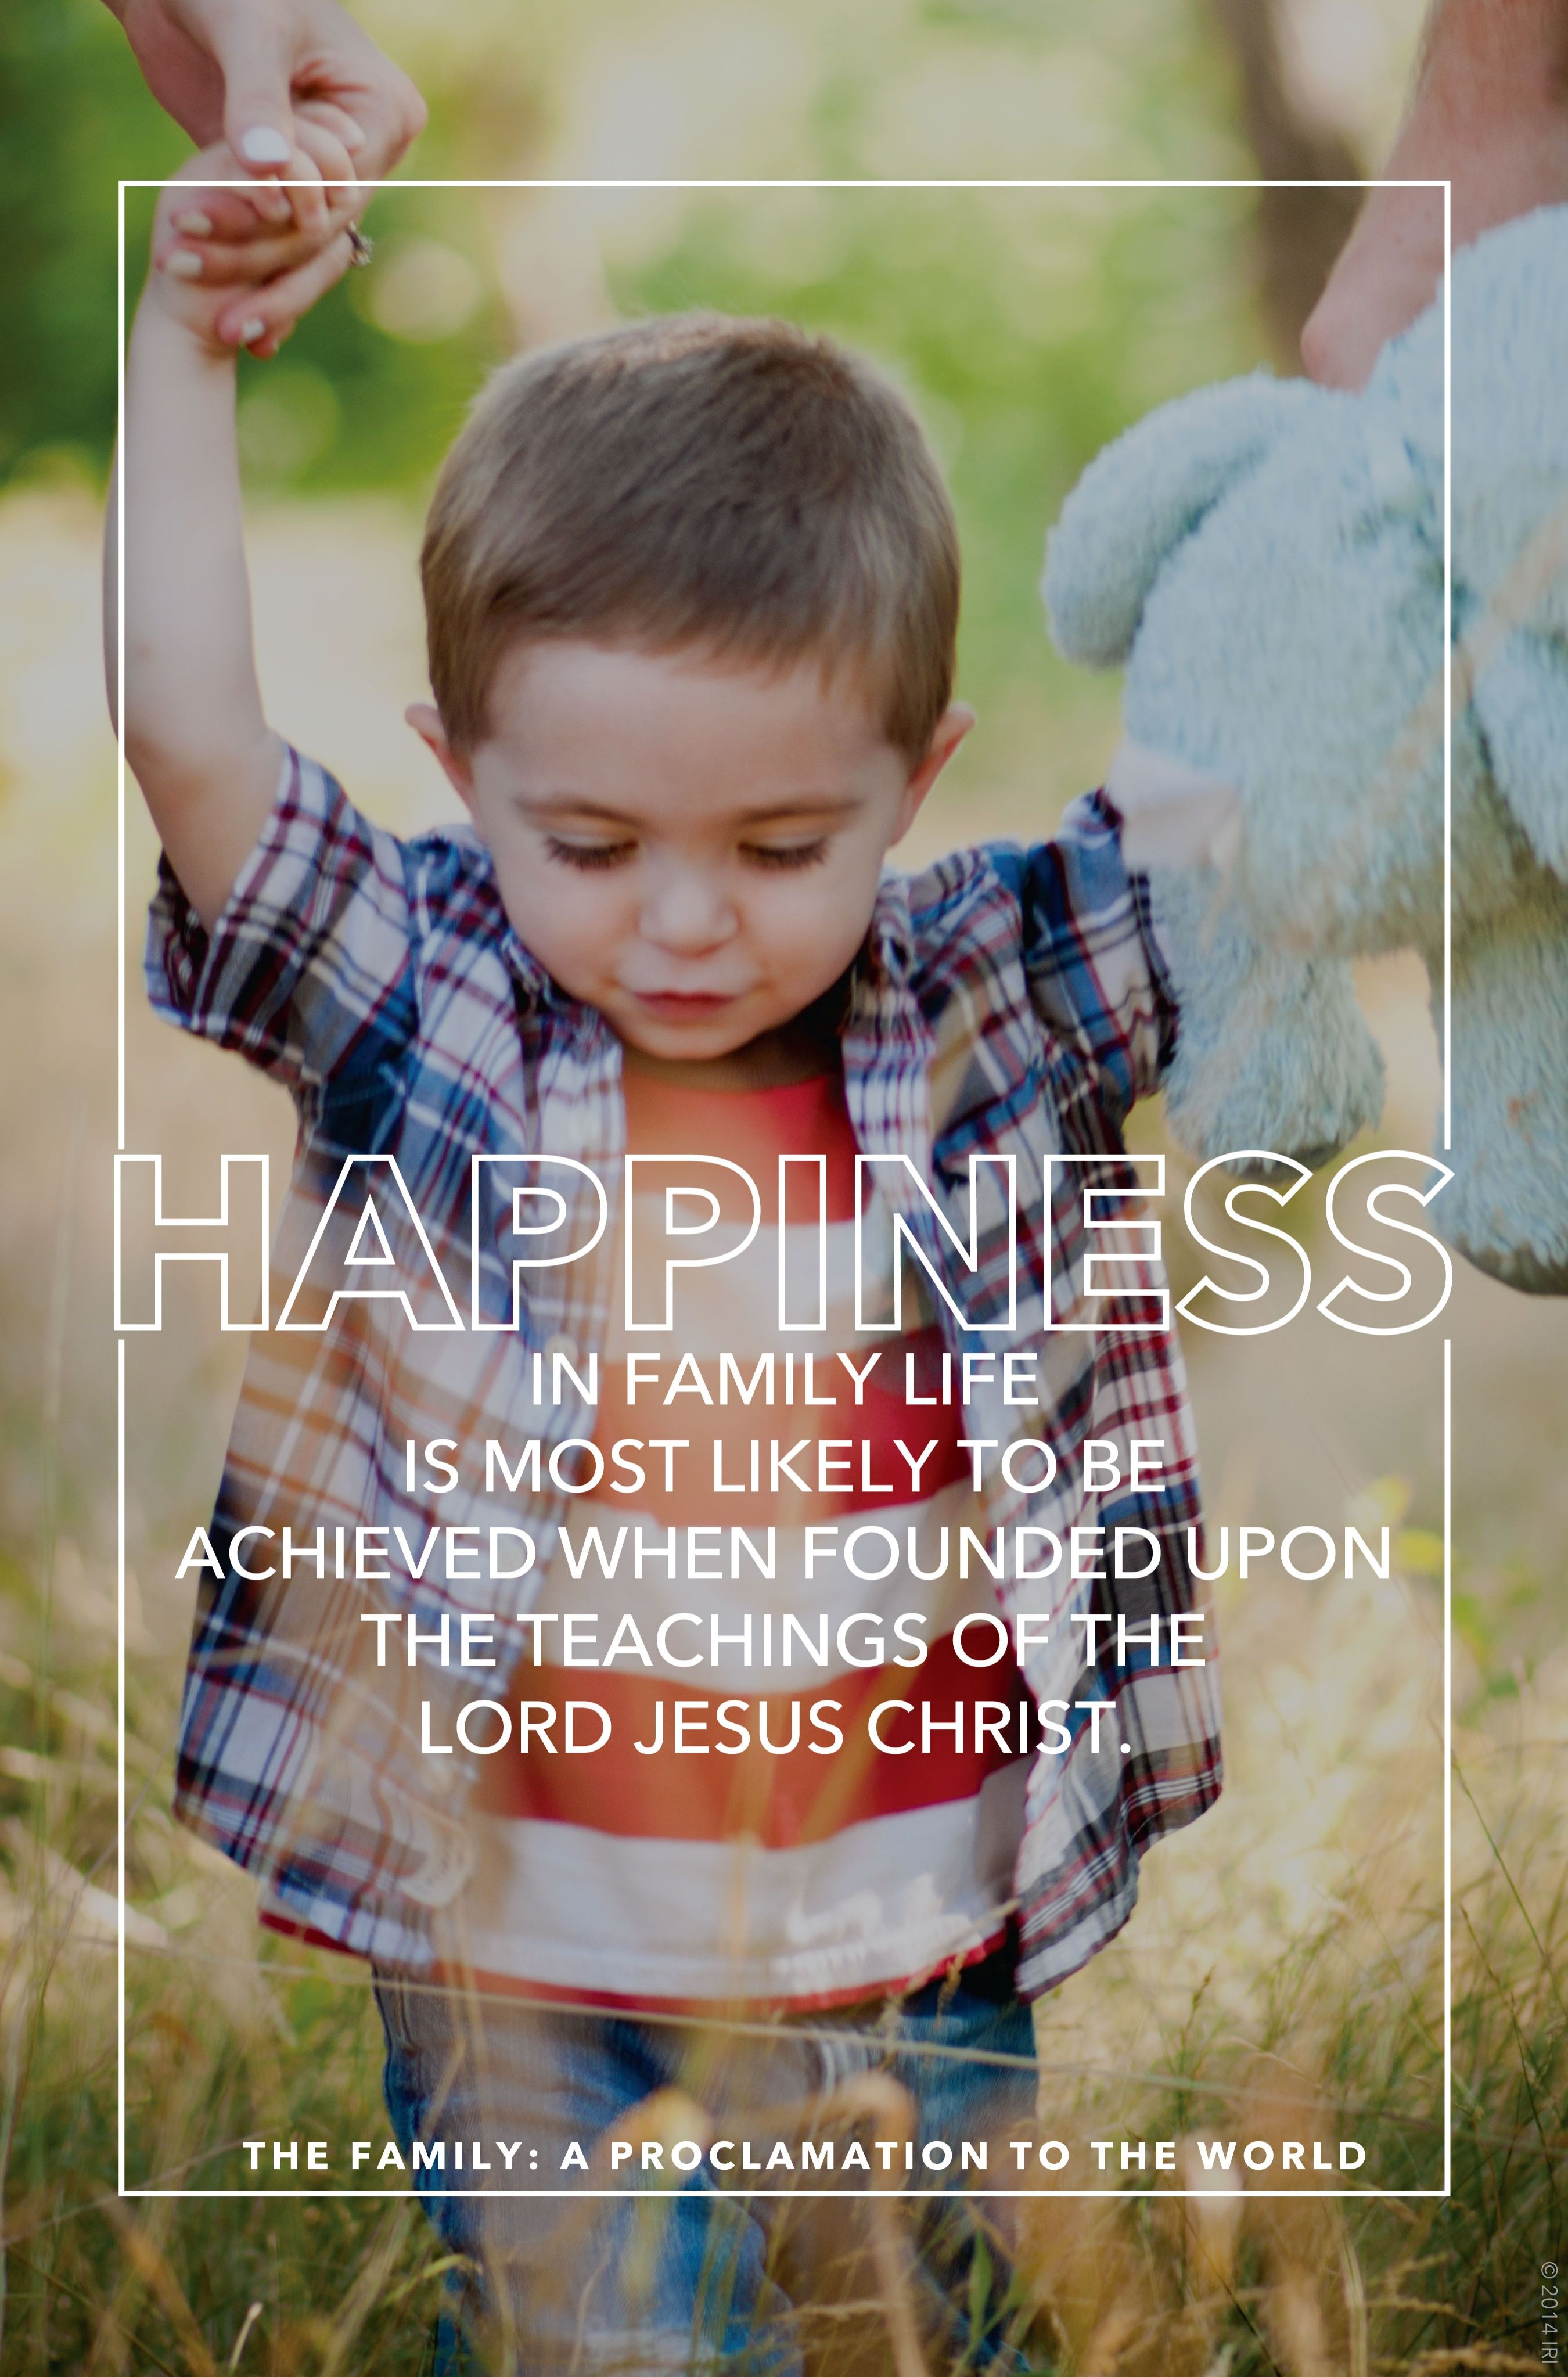 """""""Happiness in family life is most likely to be achieved when founded upon the teachings of the Lord Jesus Christ.""""—""""The Family: A Proclamation to the World"""""""